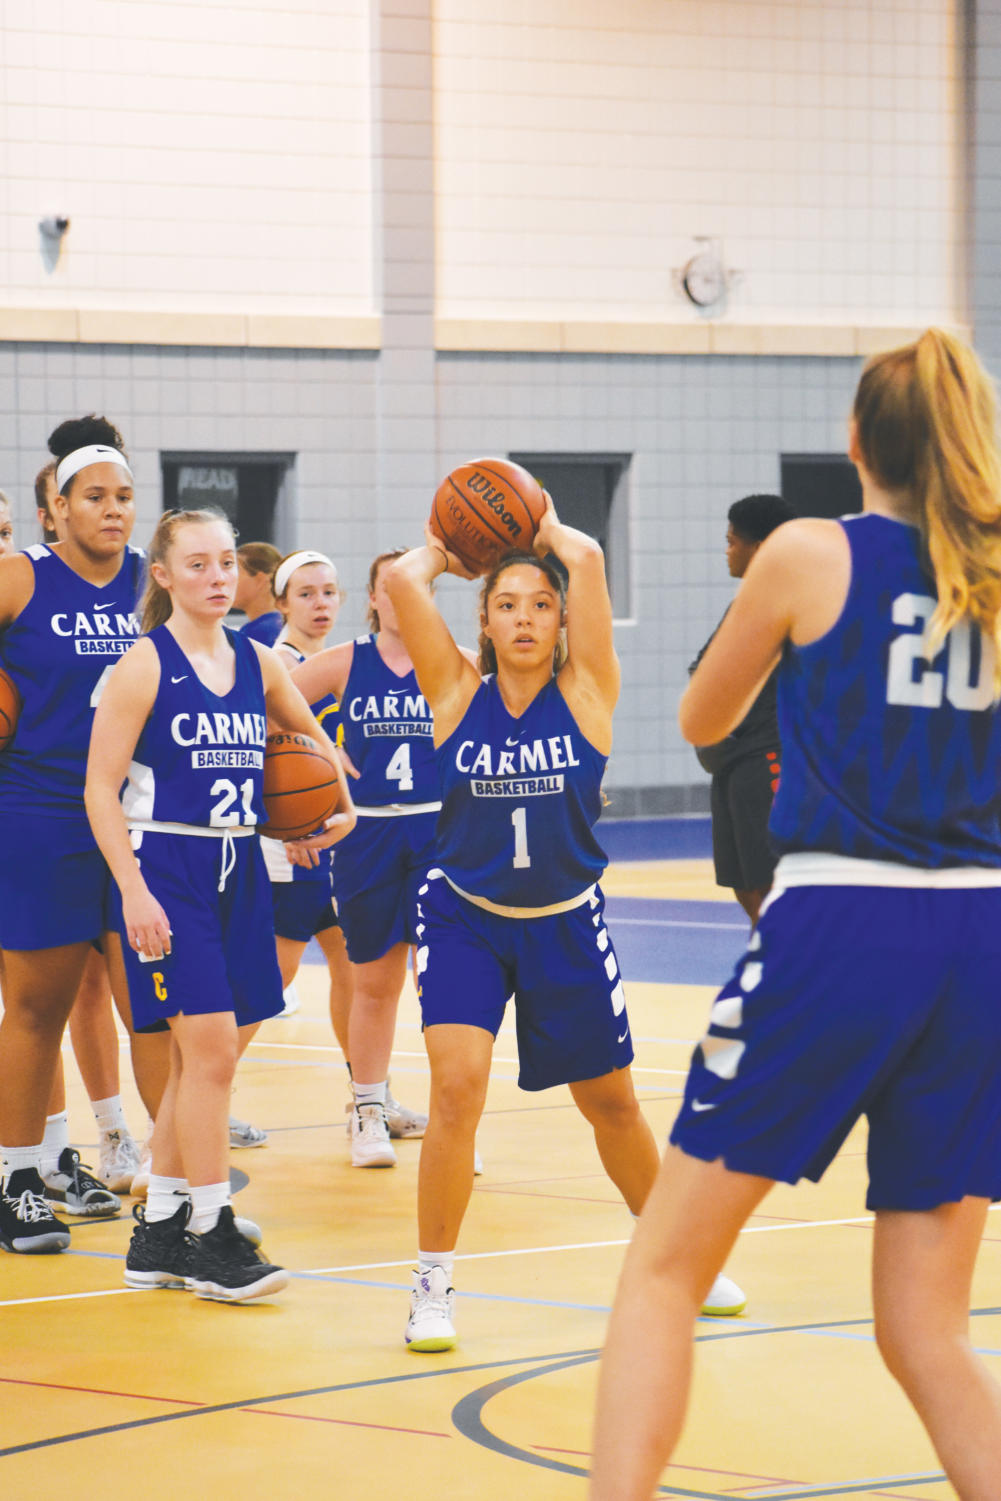 SHOOTAROUND: Senior Kiara Gill passes the ball during a drill as the team looks on. The team opens the season with a long road trip to Homestead.